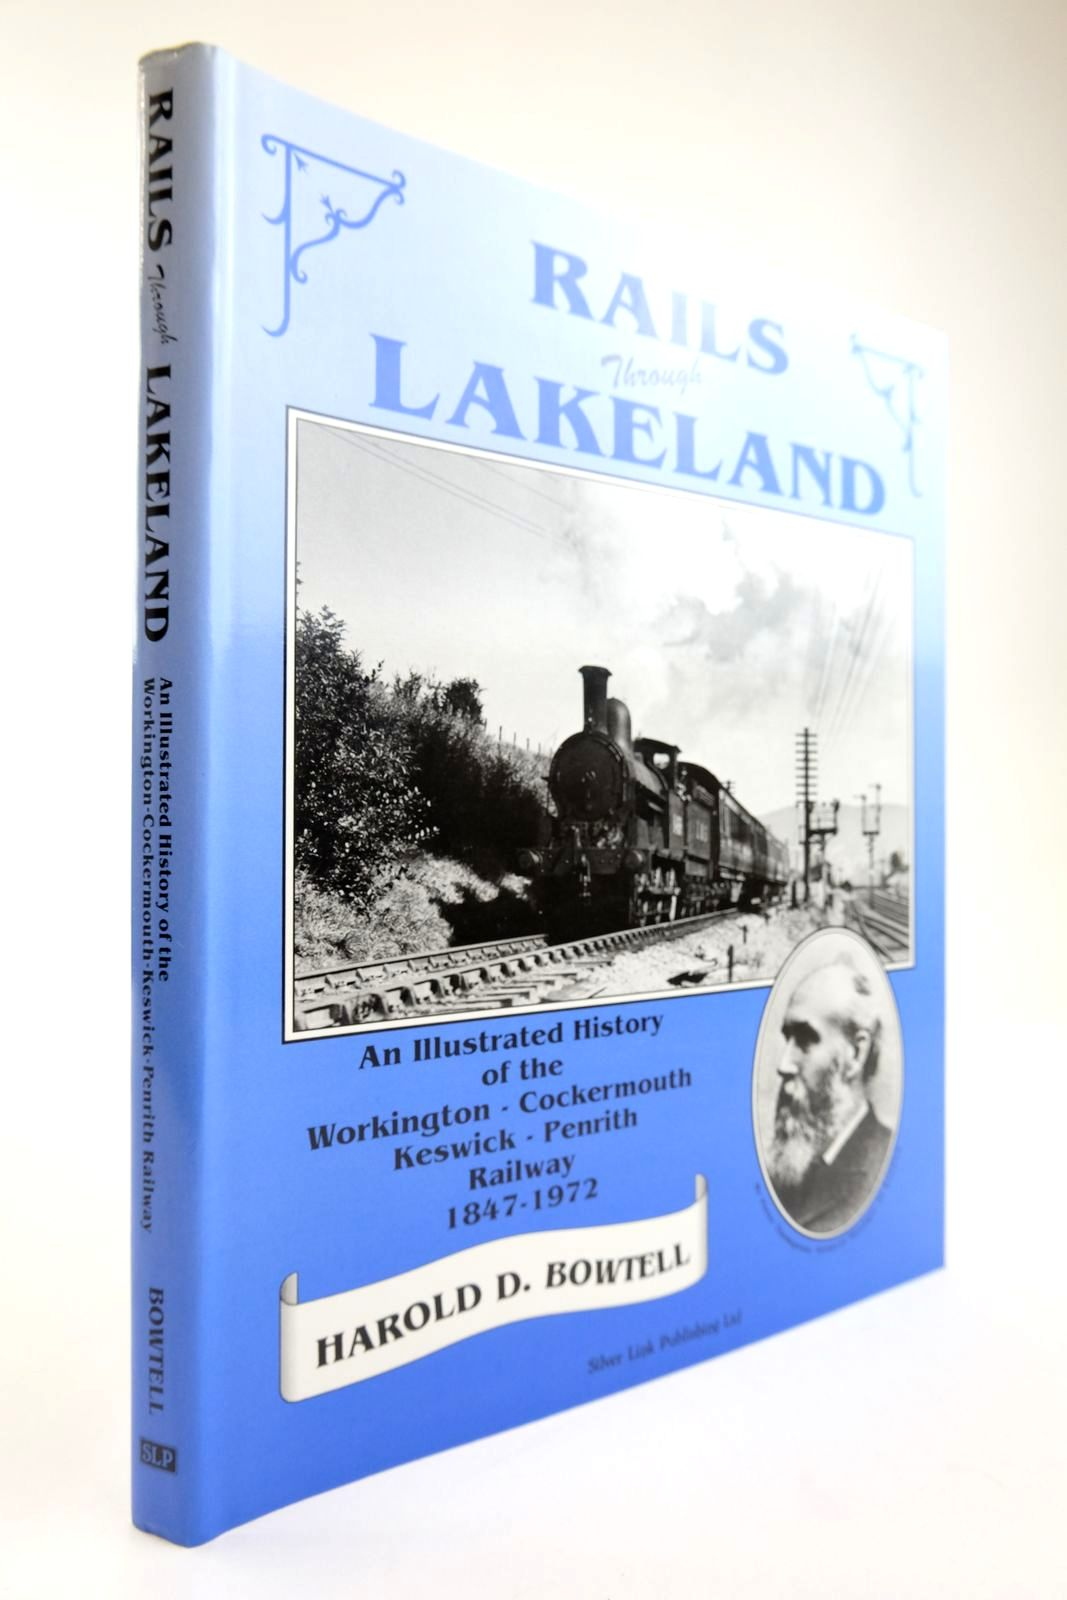 Photo of RAILS THROUGH LAKELAND AN ILLUSTRATED HISTORY OF THE WORKINGTON-COCKERMOUTH-KESWICK-PENRITH RAILWAY 1847-1972- Stock Number: 2133827